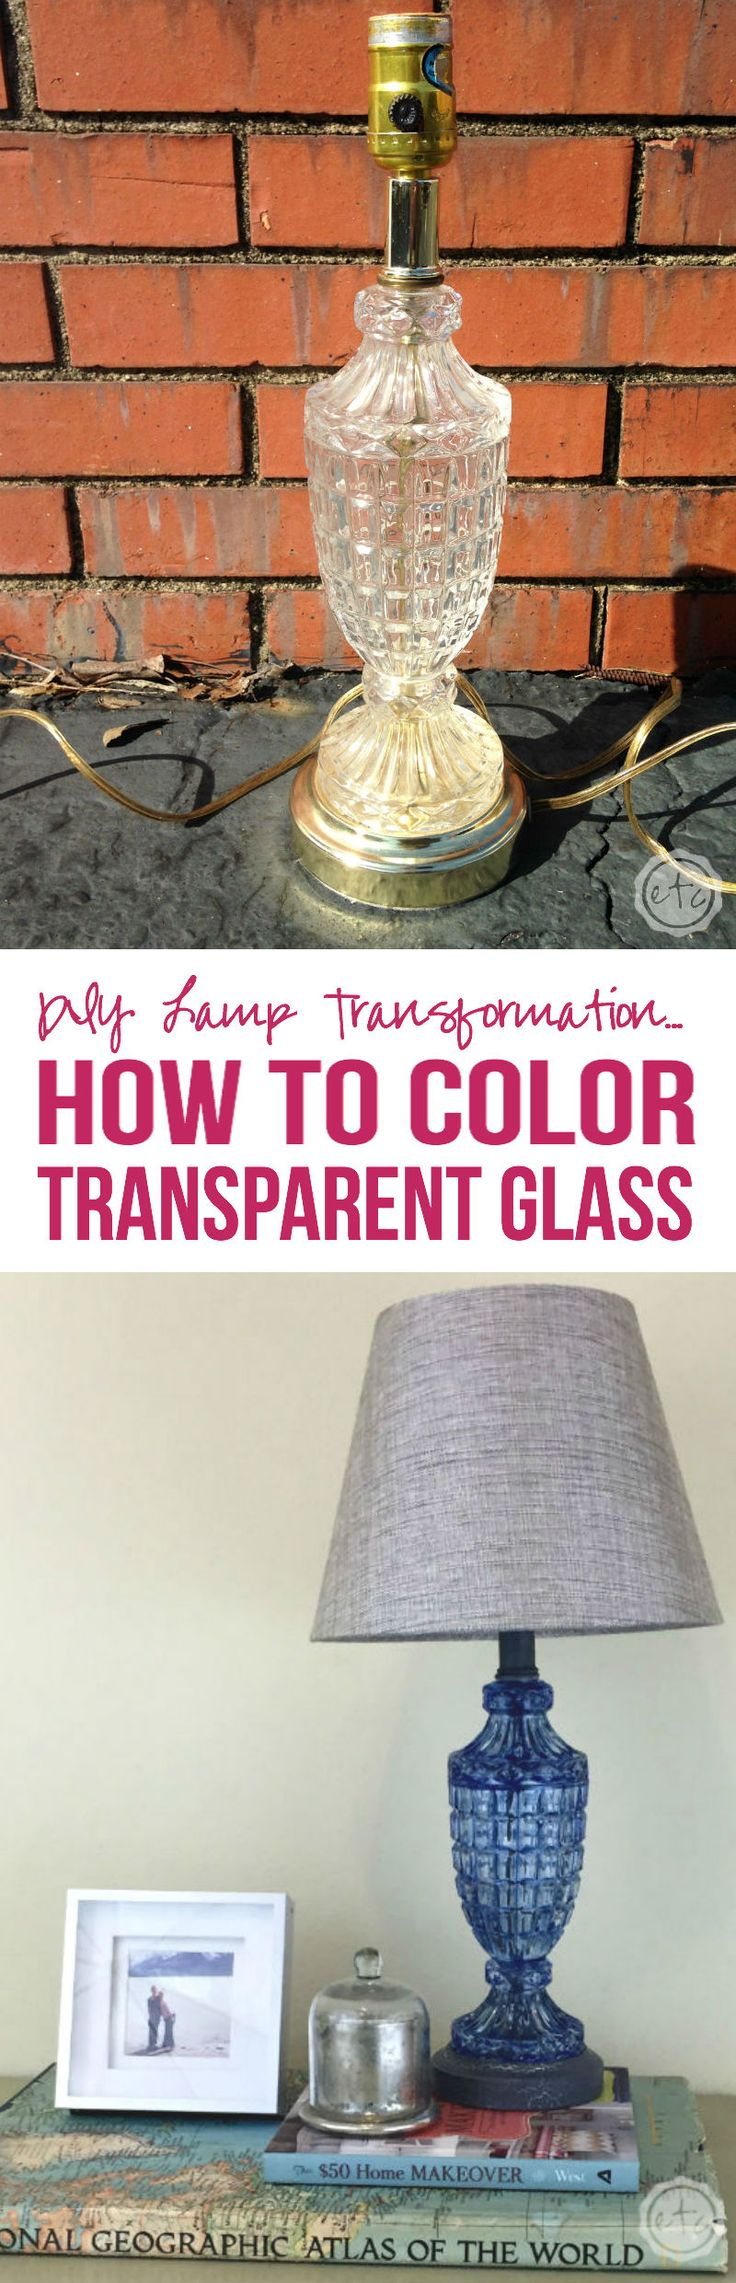 Clear glass plates for crafts - How To Color Transparent Glass